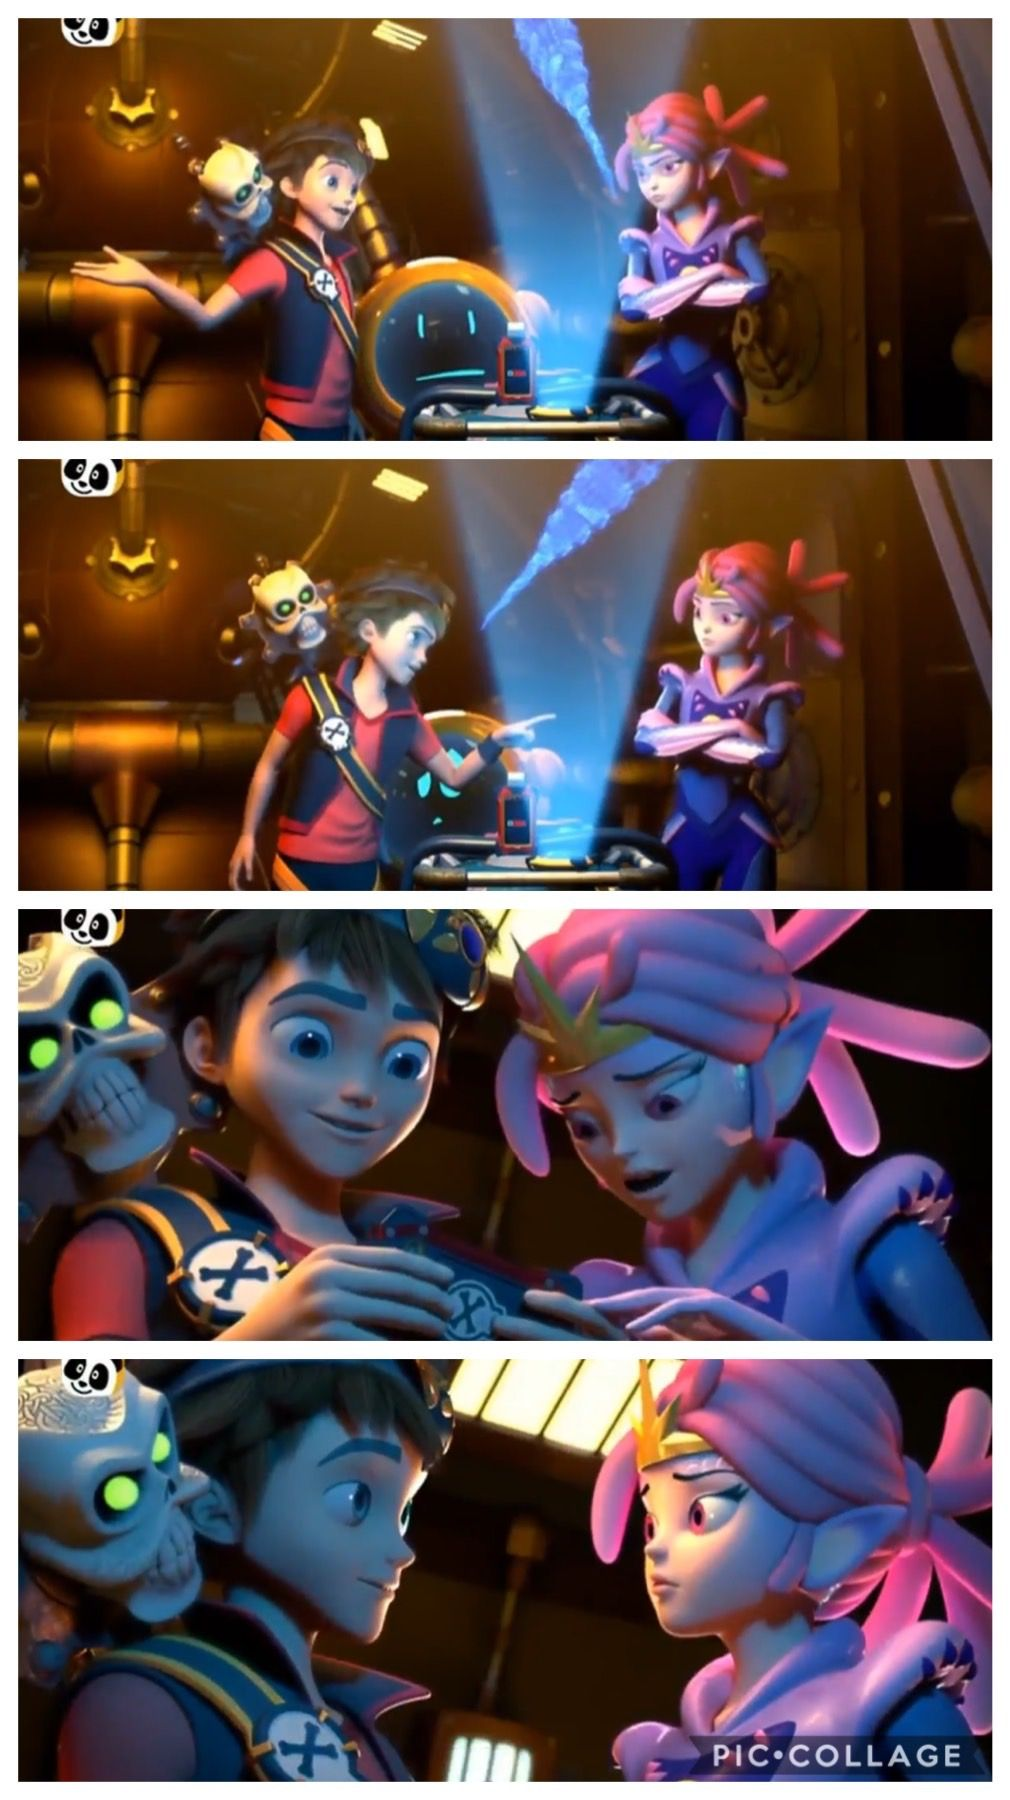 Zak And Cece Moments Zak Storm Season 1 Episode 23 Call To